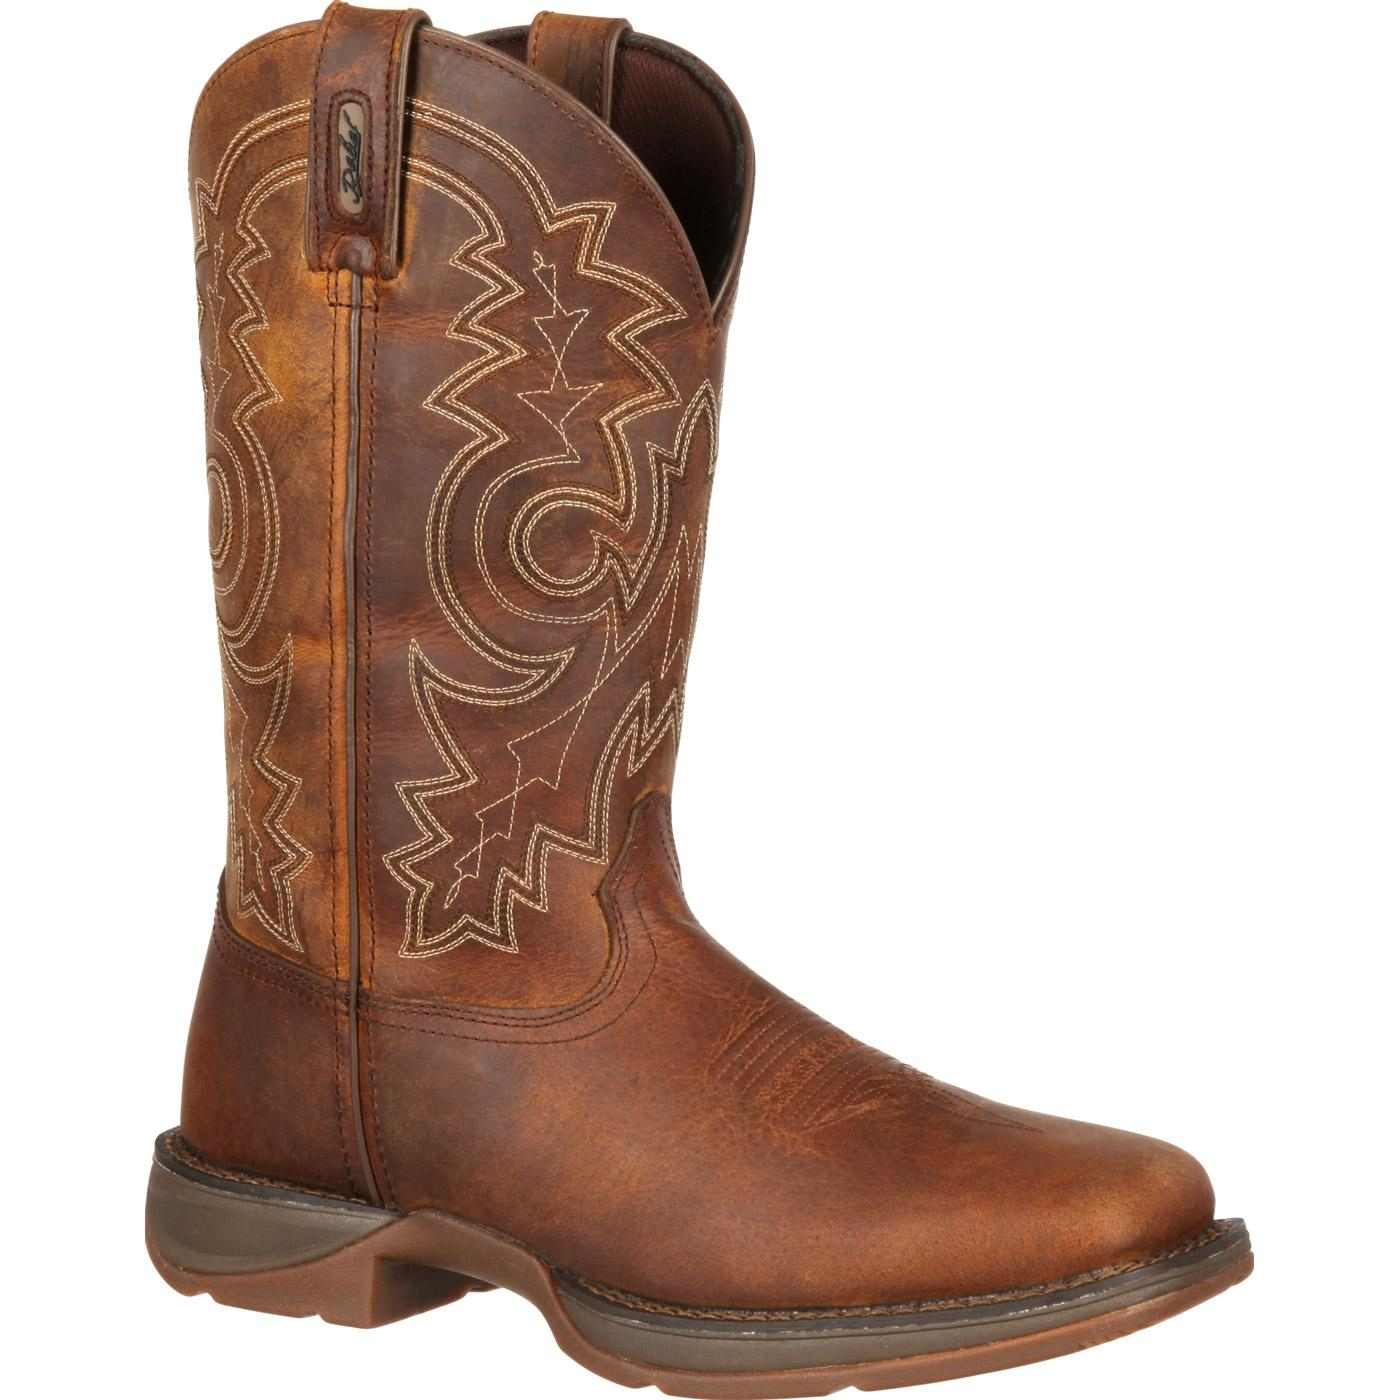 Durango Rebel Square Toe (Men's) E8GRyy71Pl